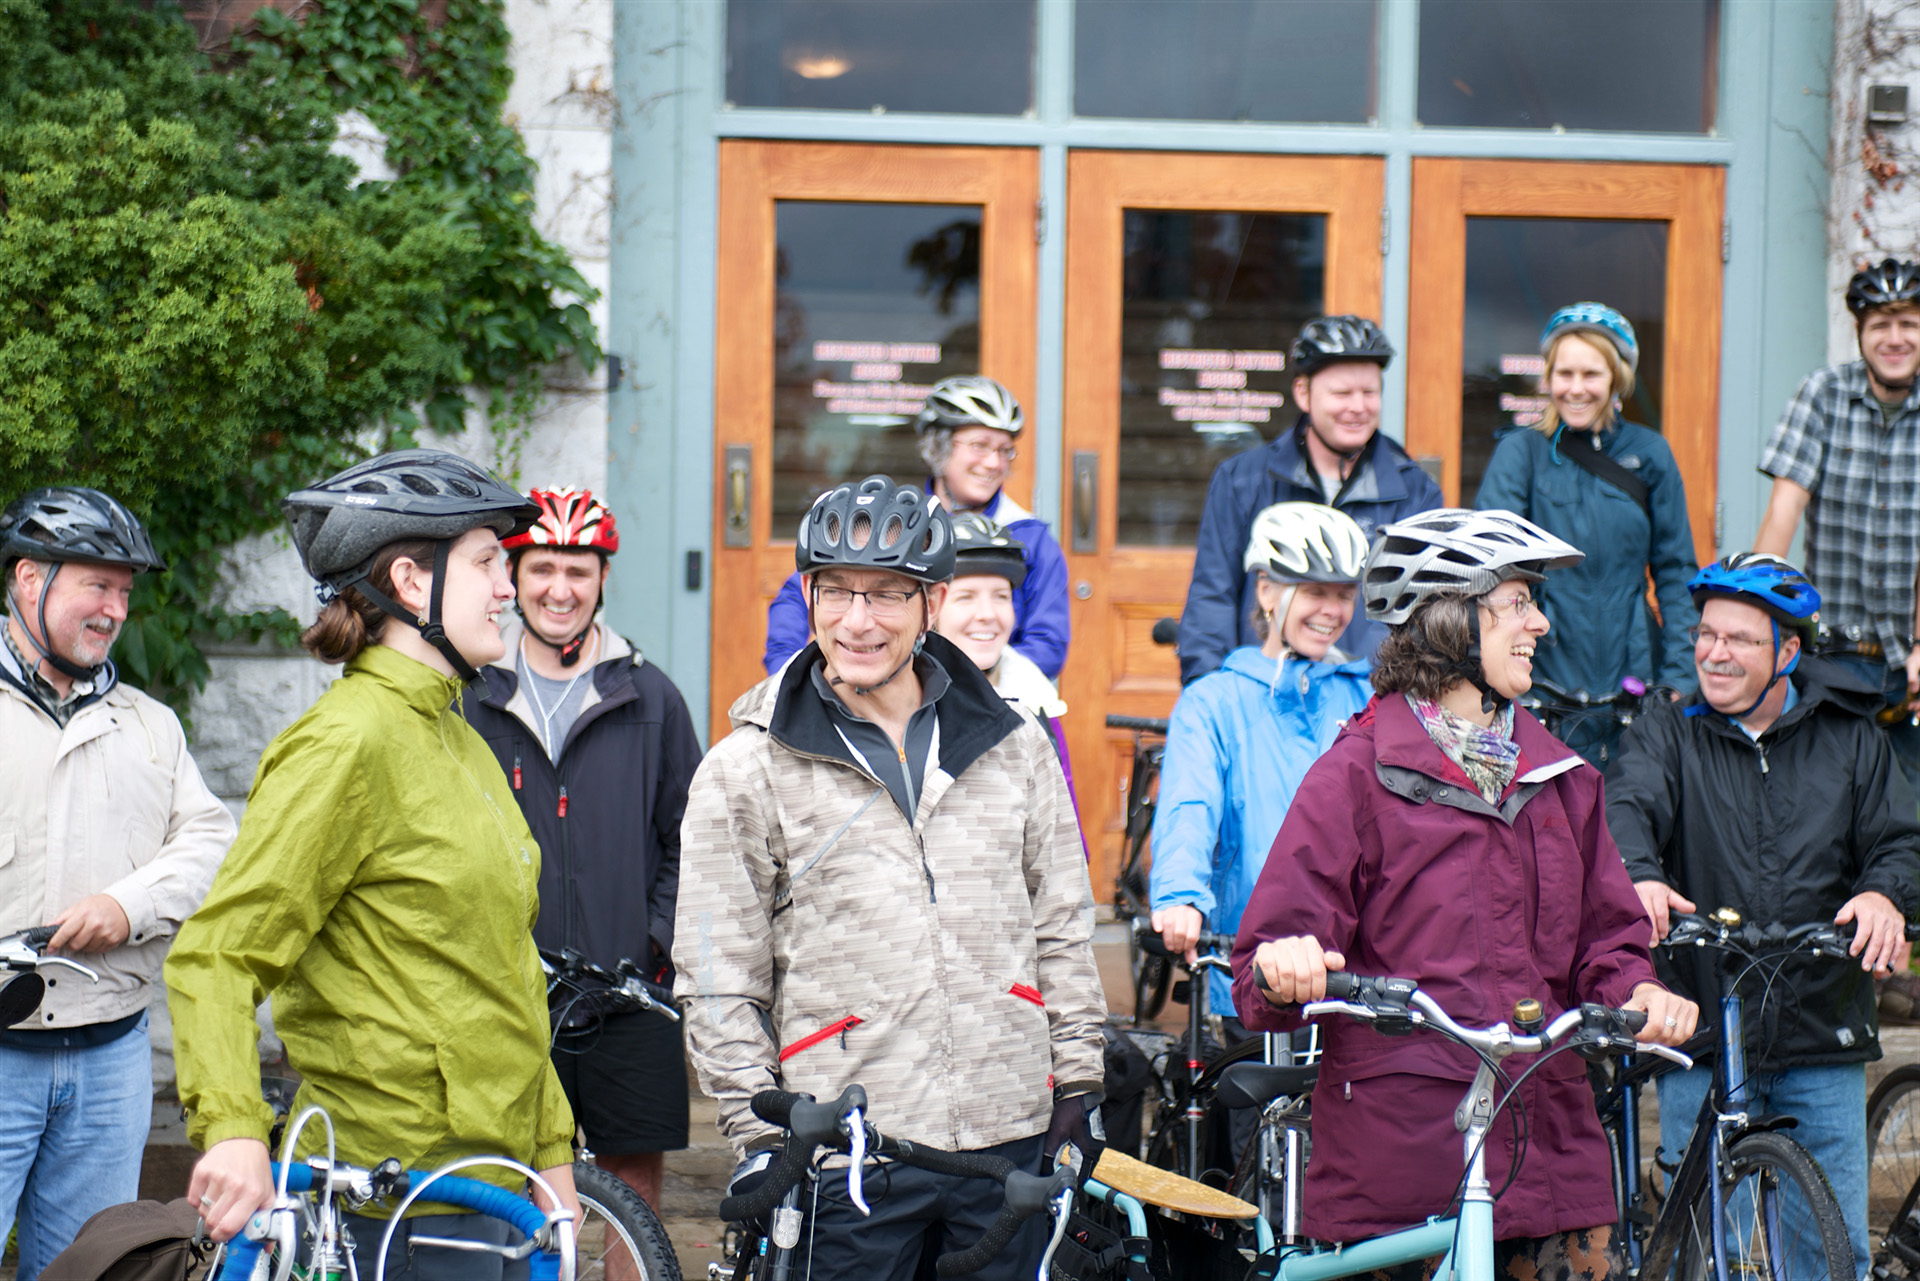 CYCLE TOUR GROUPS GETTING READY TO GO